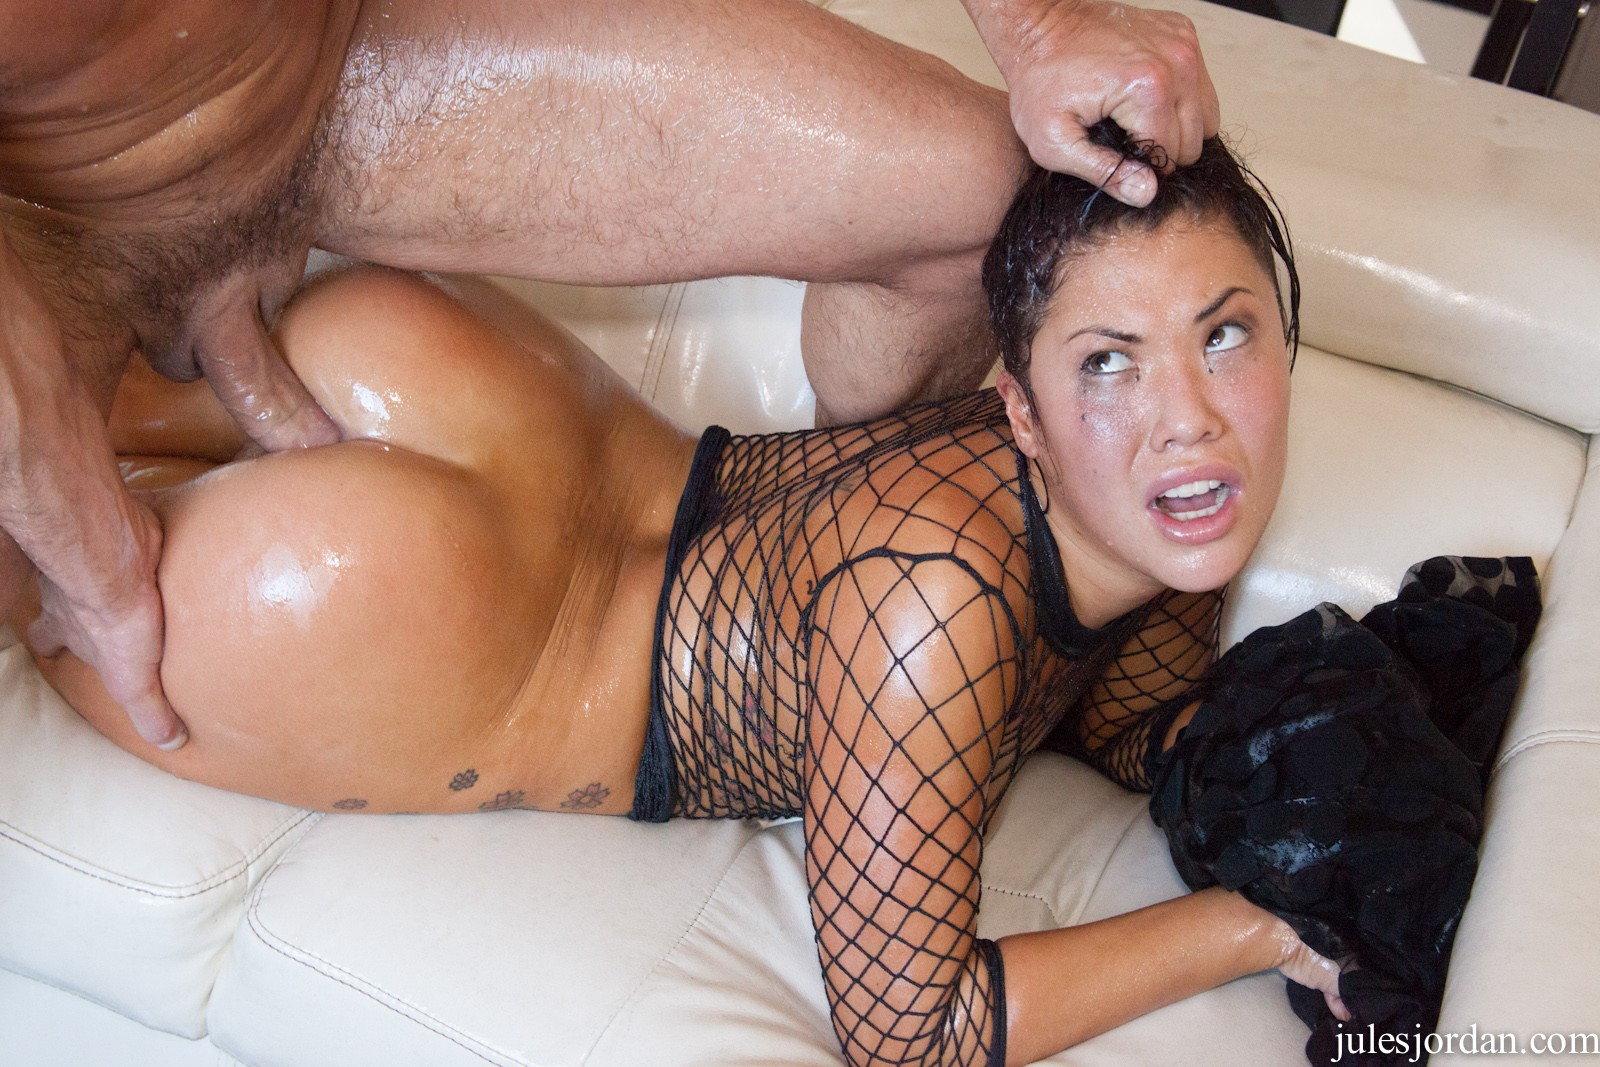 London keyes anal